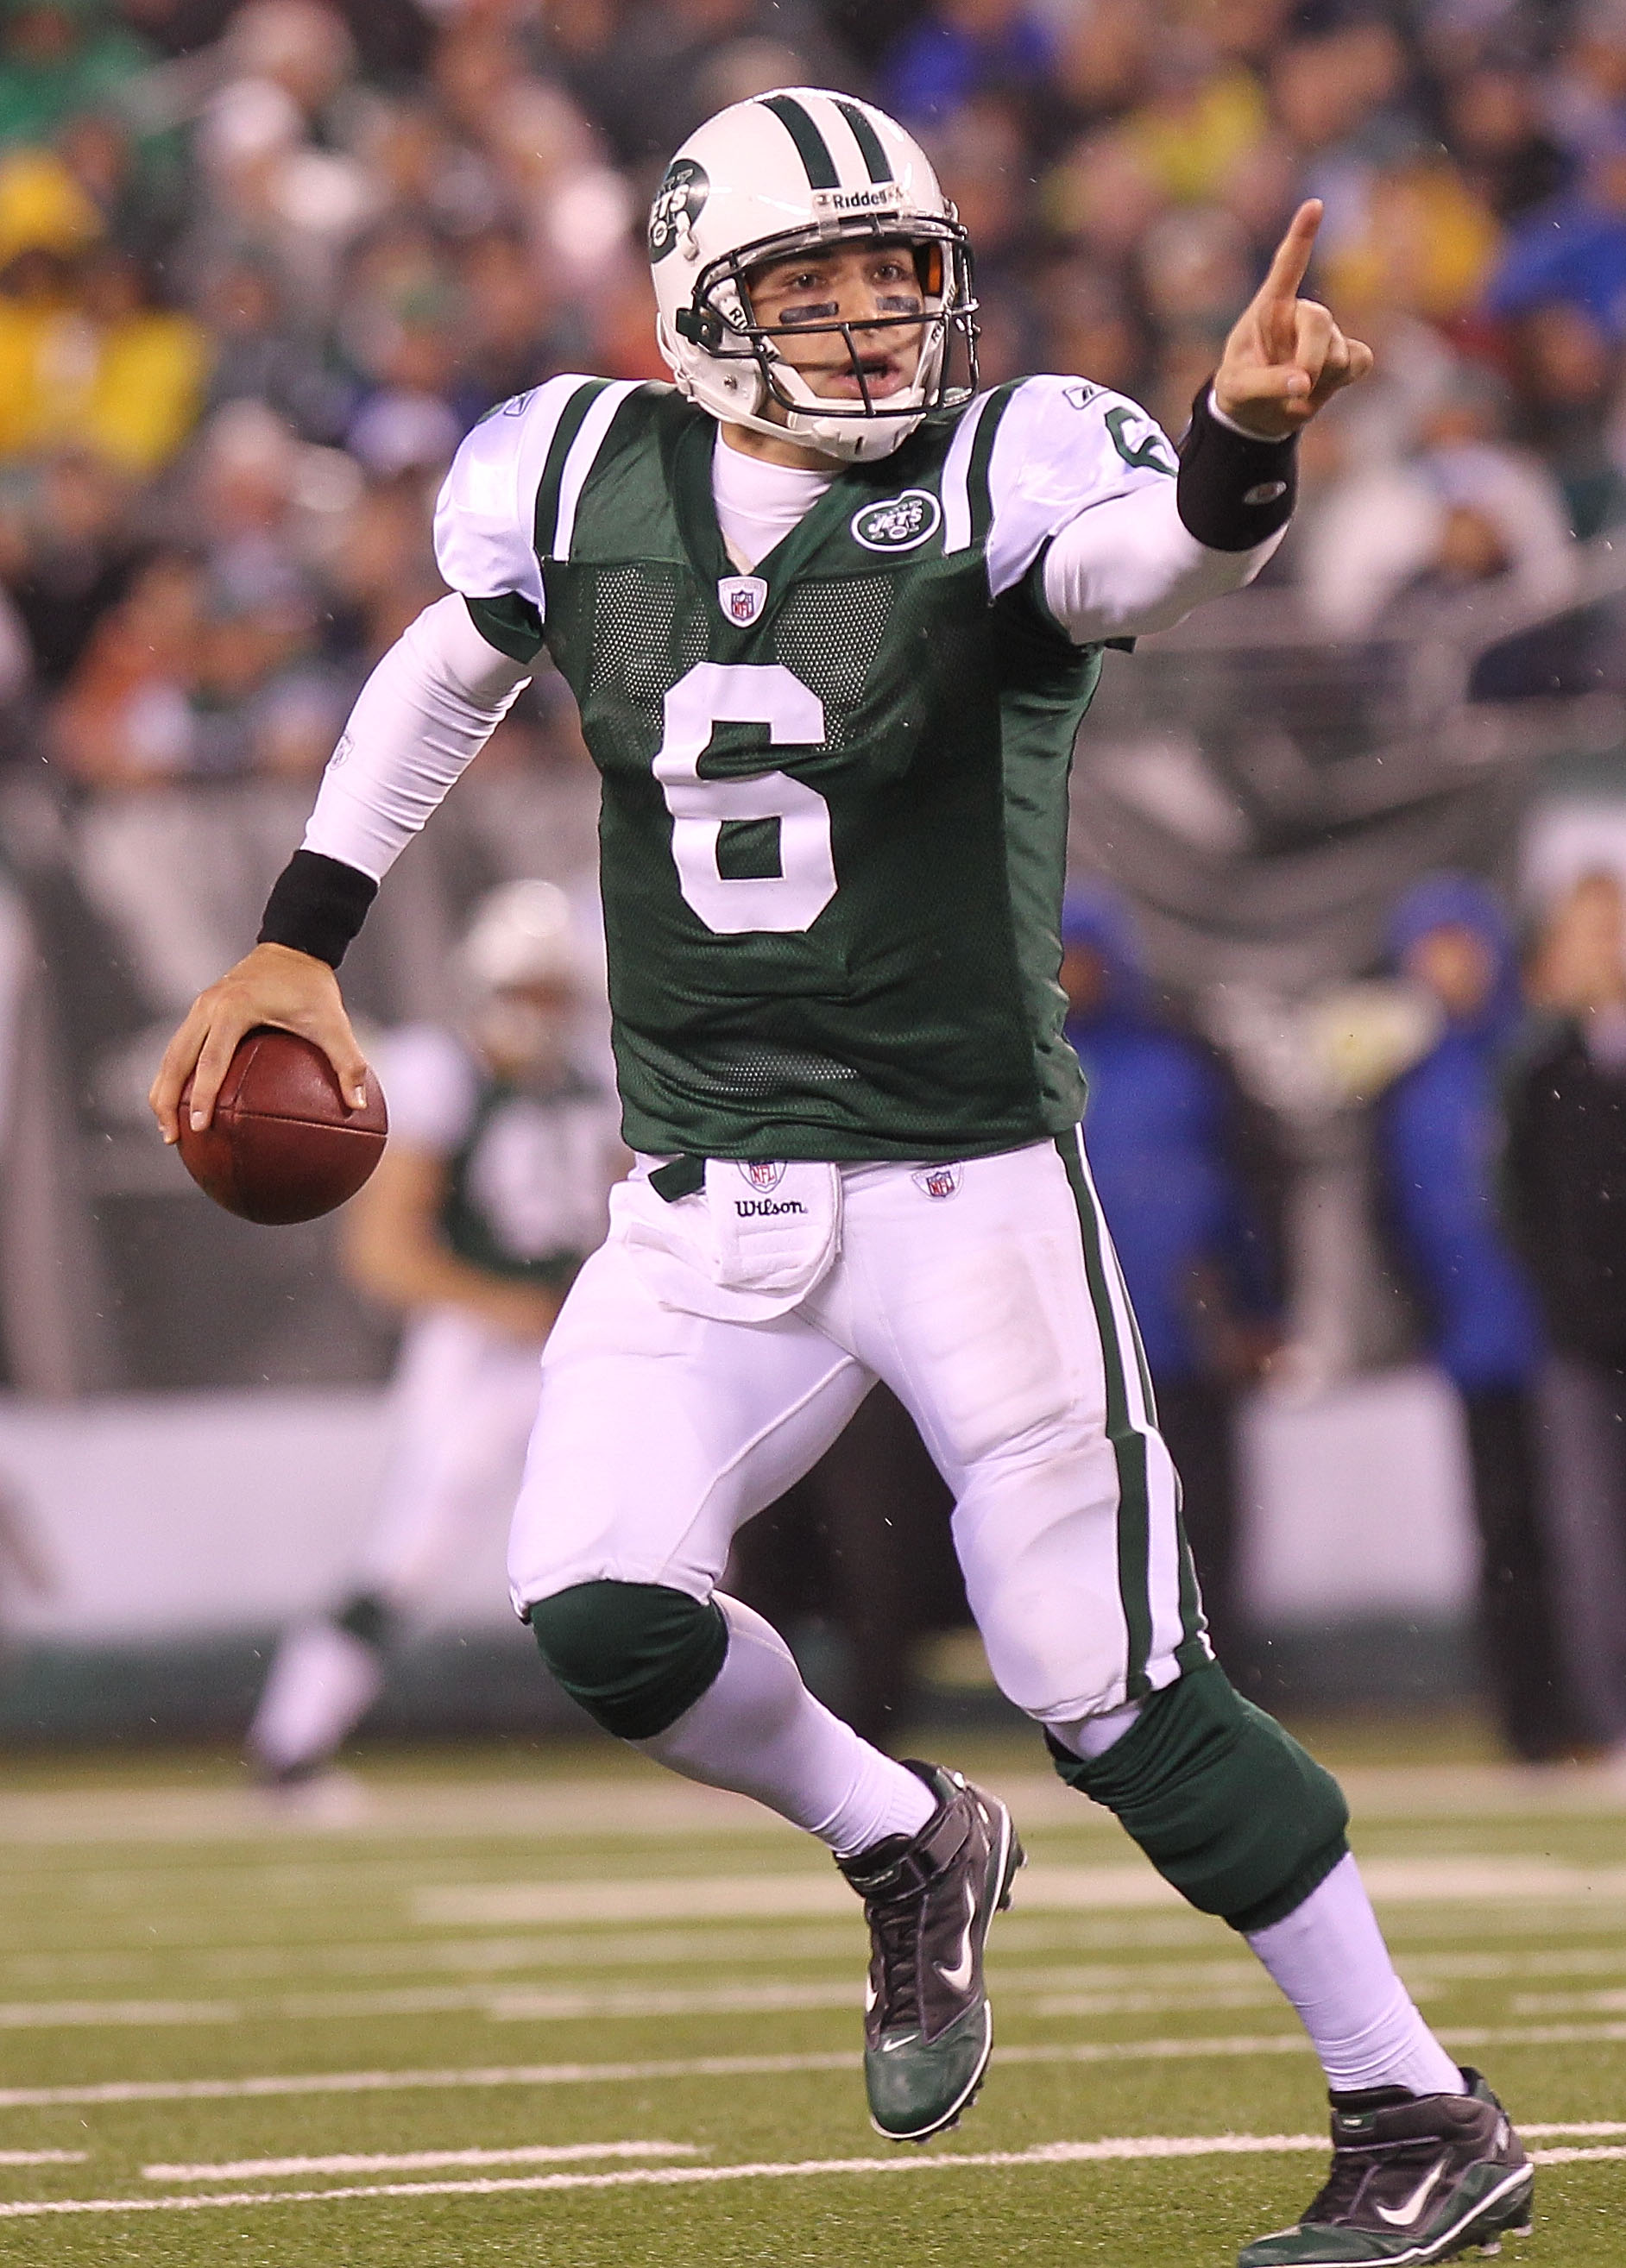 EAST RUTHERFORD, NJ - DECEMBER 12:  Mark Sanchez #6 of the New York Jets looks to pass against the Miami Dolphins at New Meadowlands Stadium on December 12, 2010 in East Rutherford, New Jersey.  (Photo by Nick Laham/Getty Images)